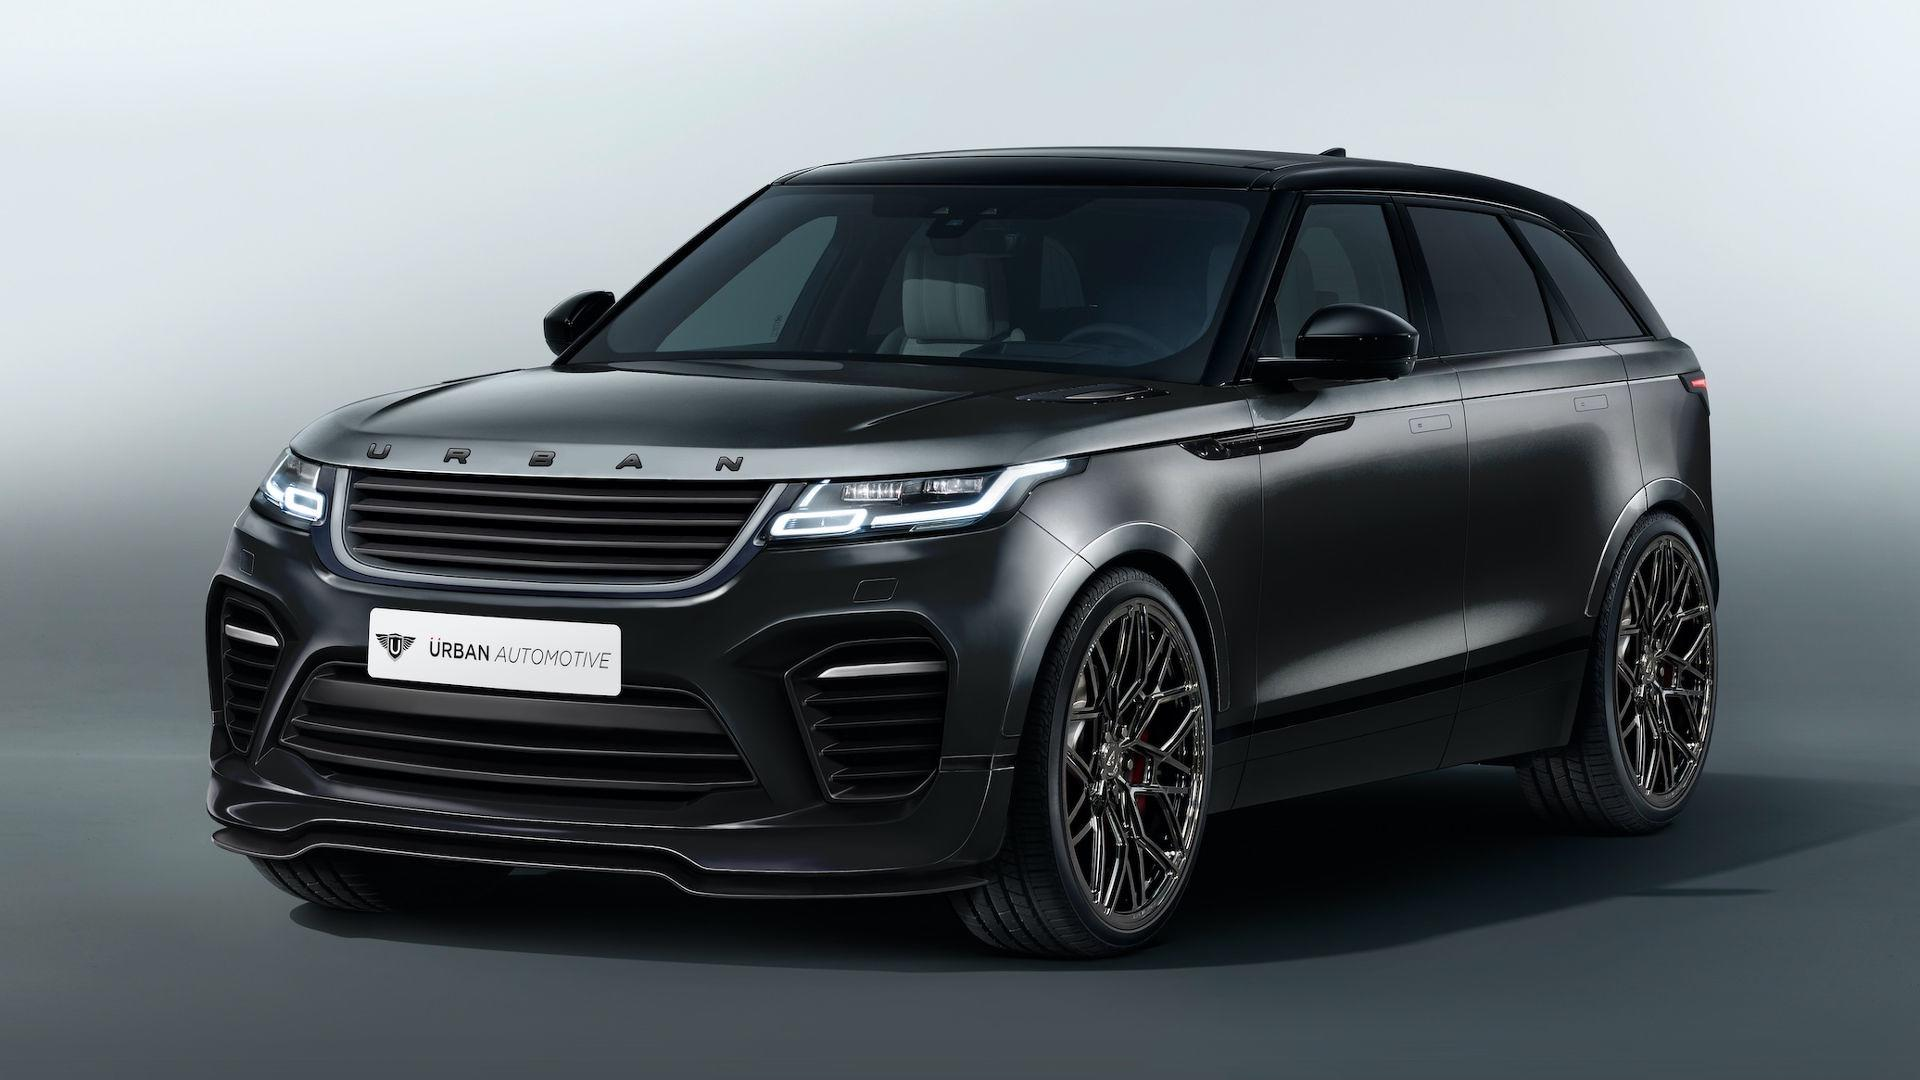 range rover velar gains urban automotive makeover. Black Bedroom Furniture Sets. Home Design Ideas